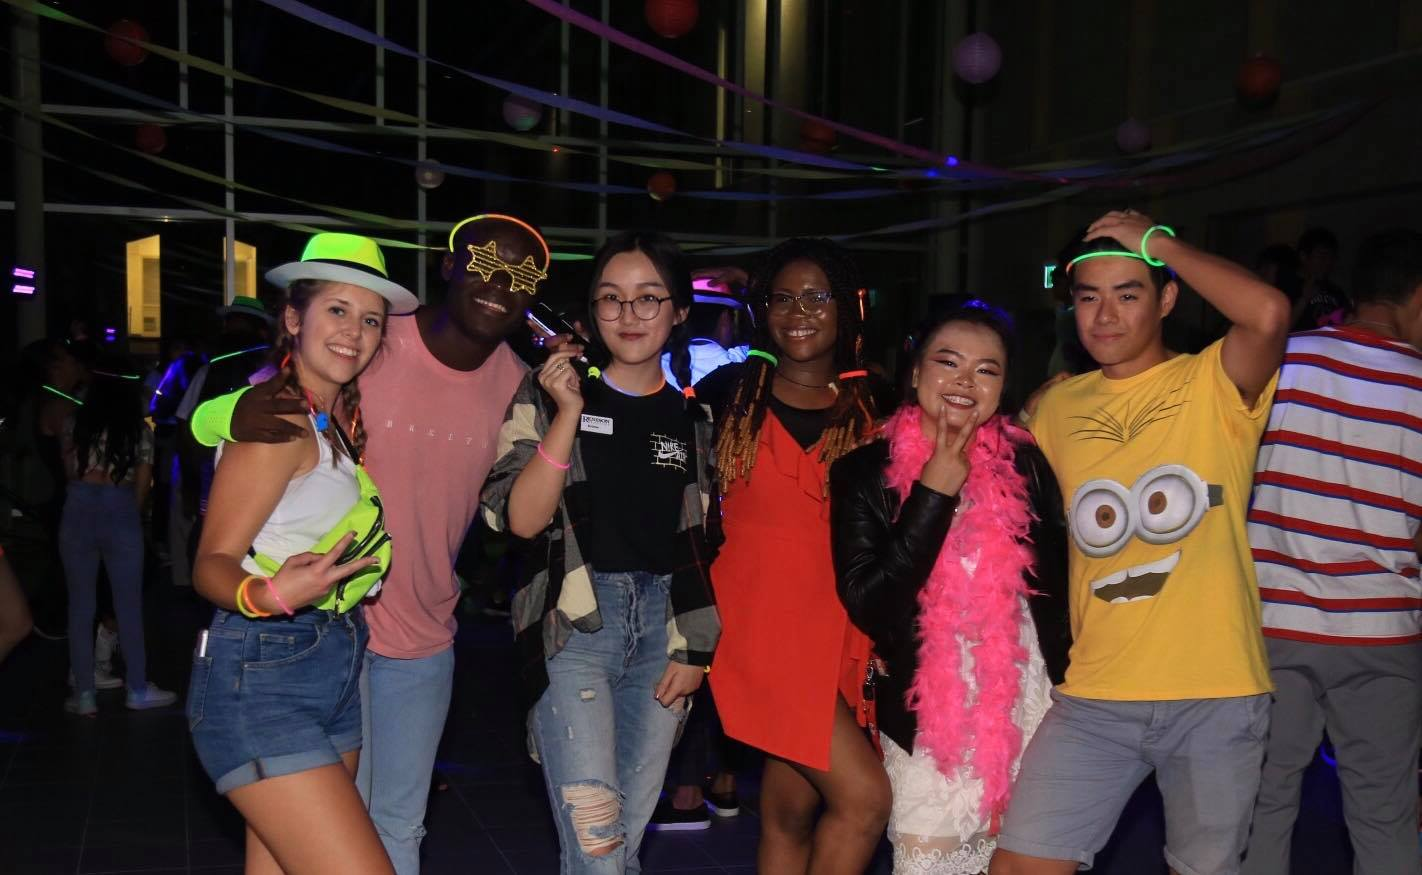 Students at the Neon Dance Party